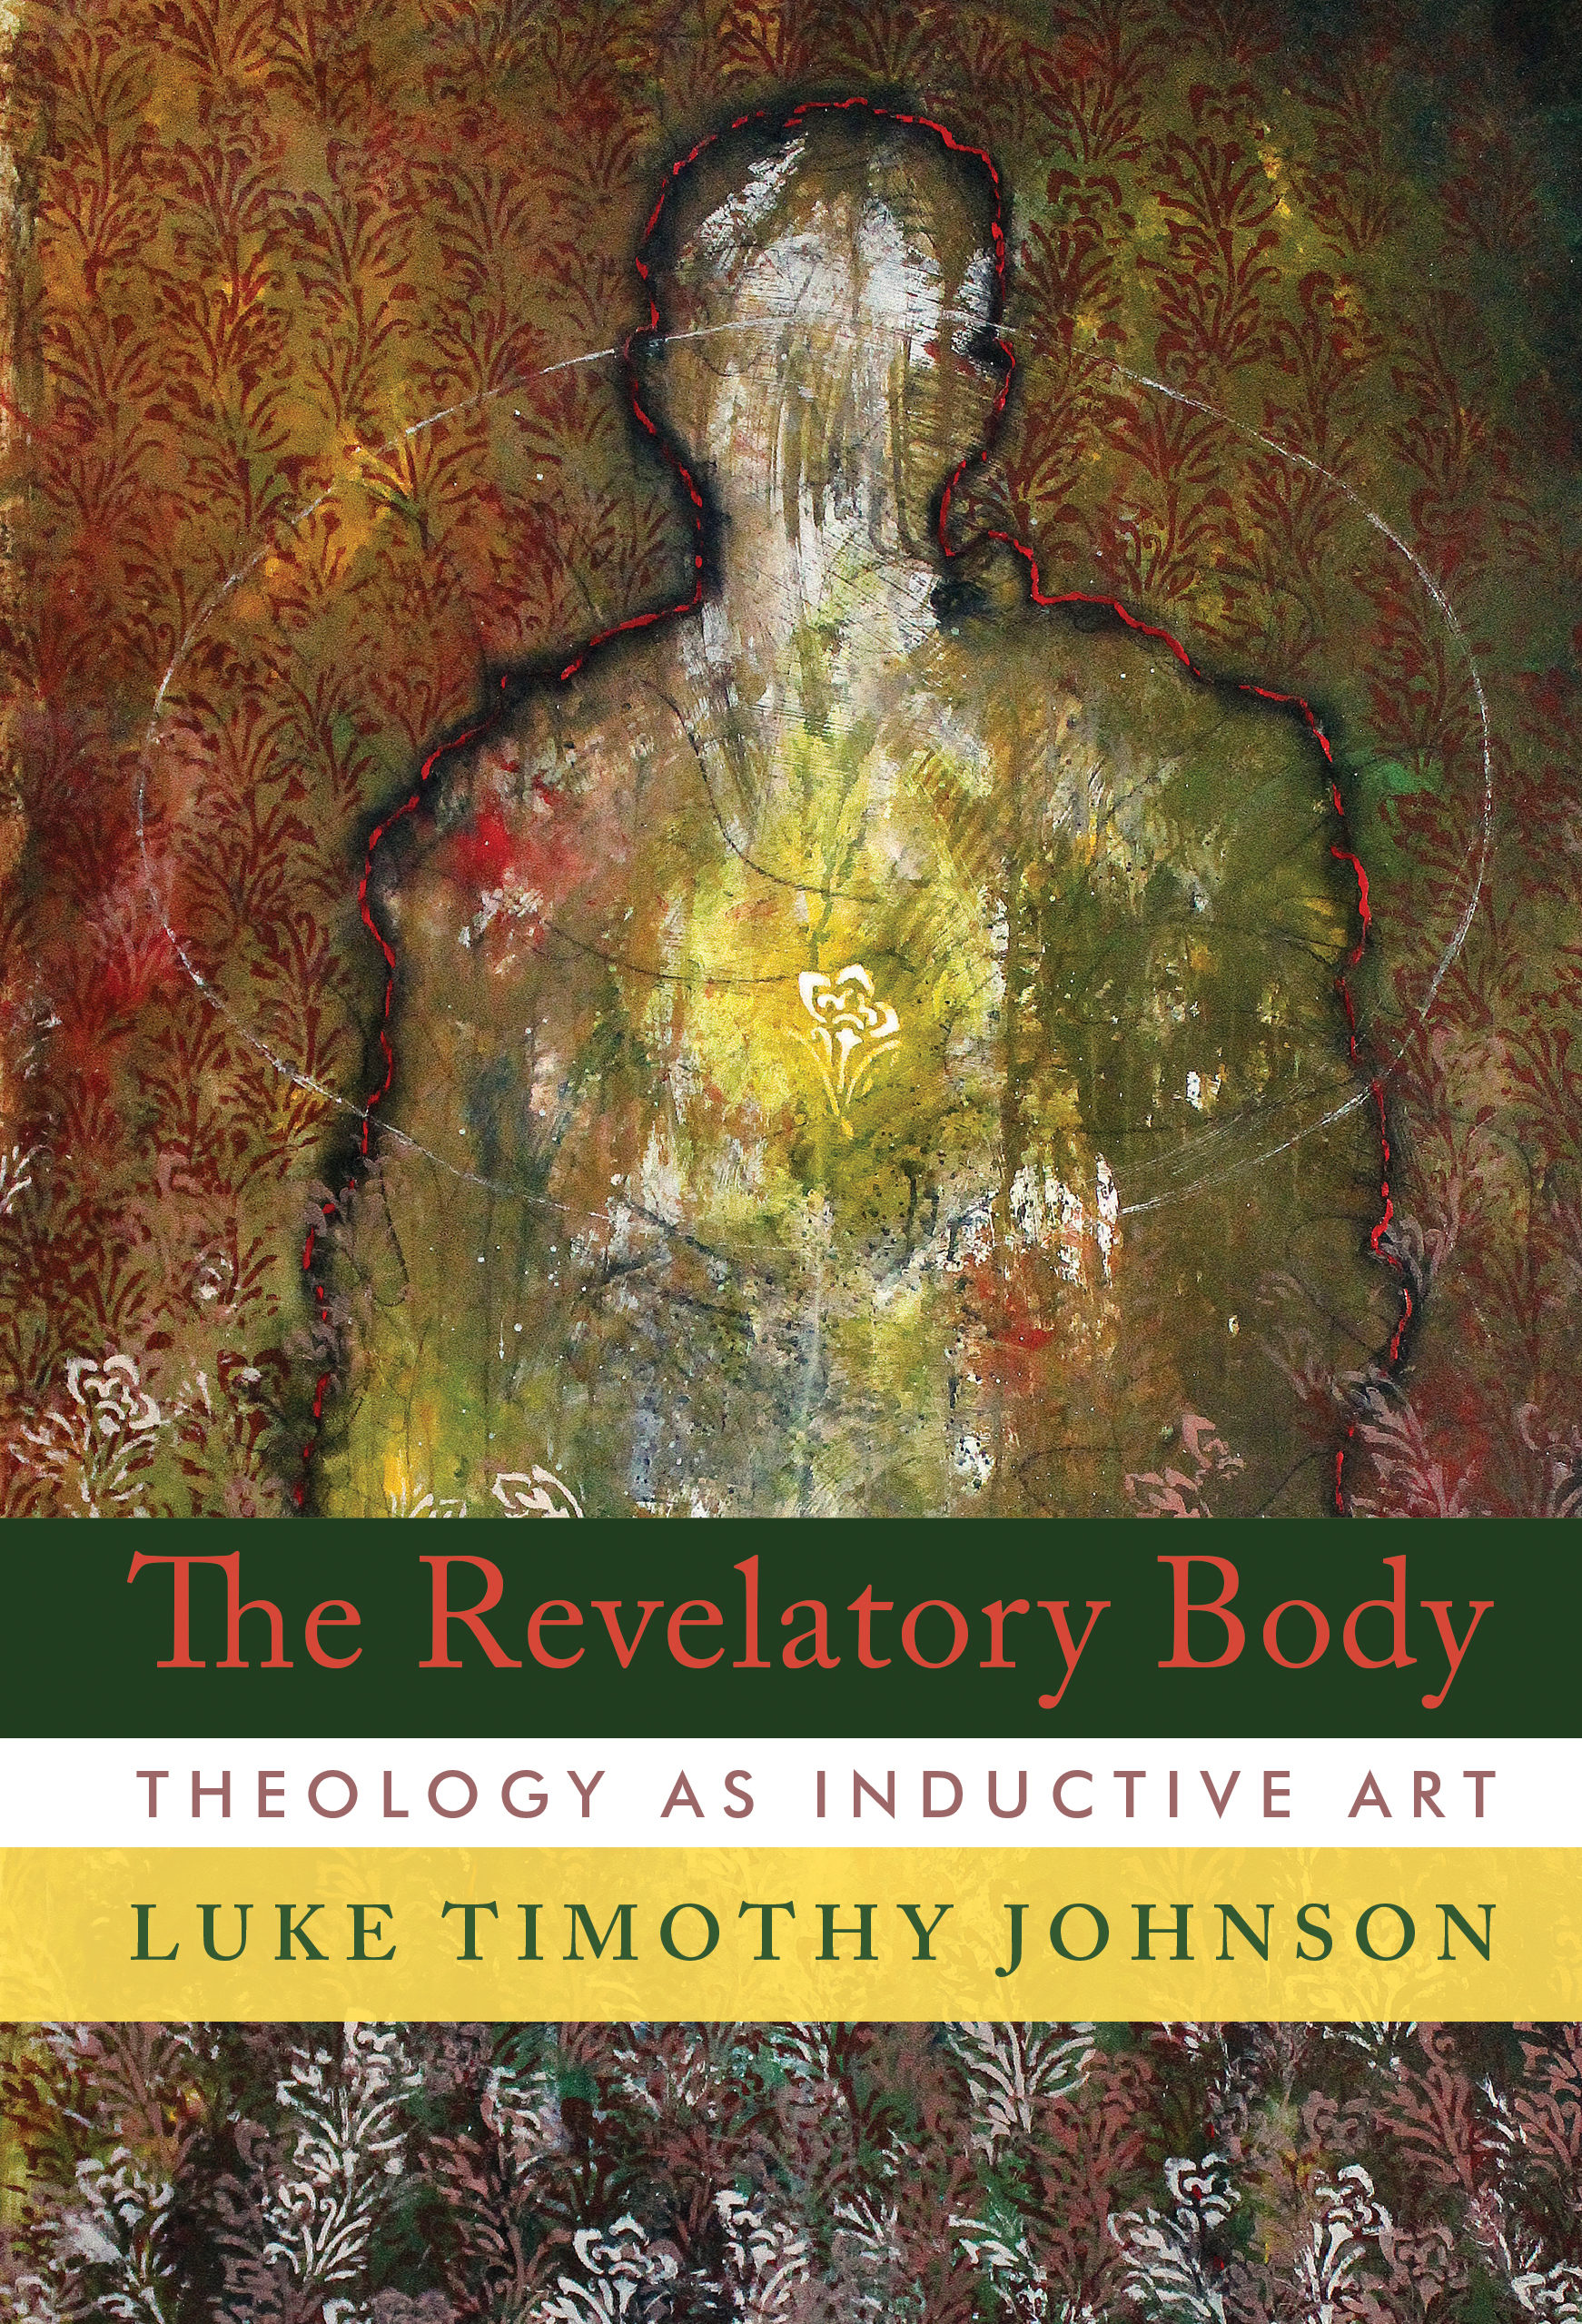 Review Of The Revelatory Body Theology As Inductive Art